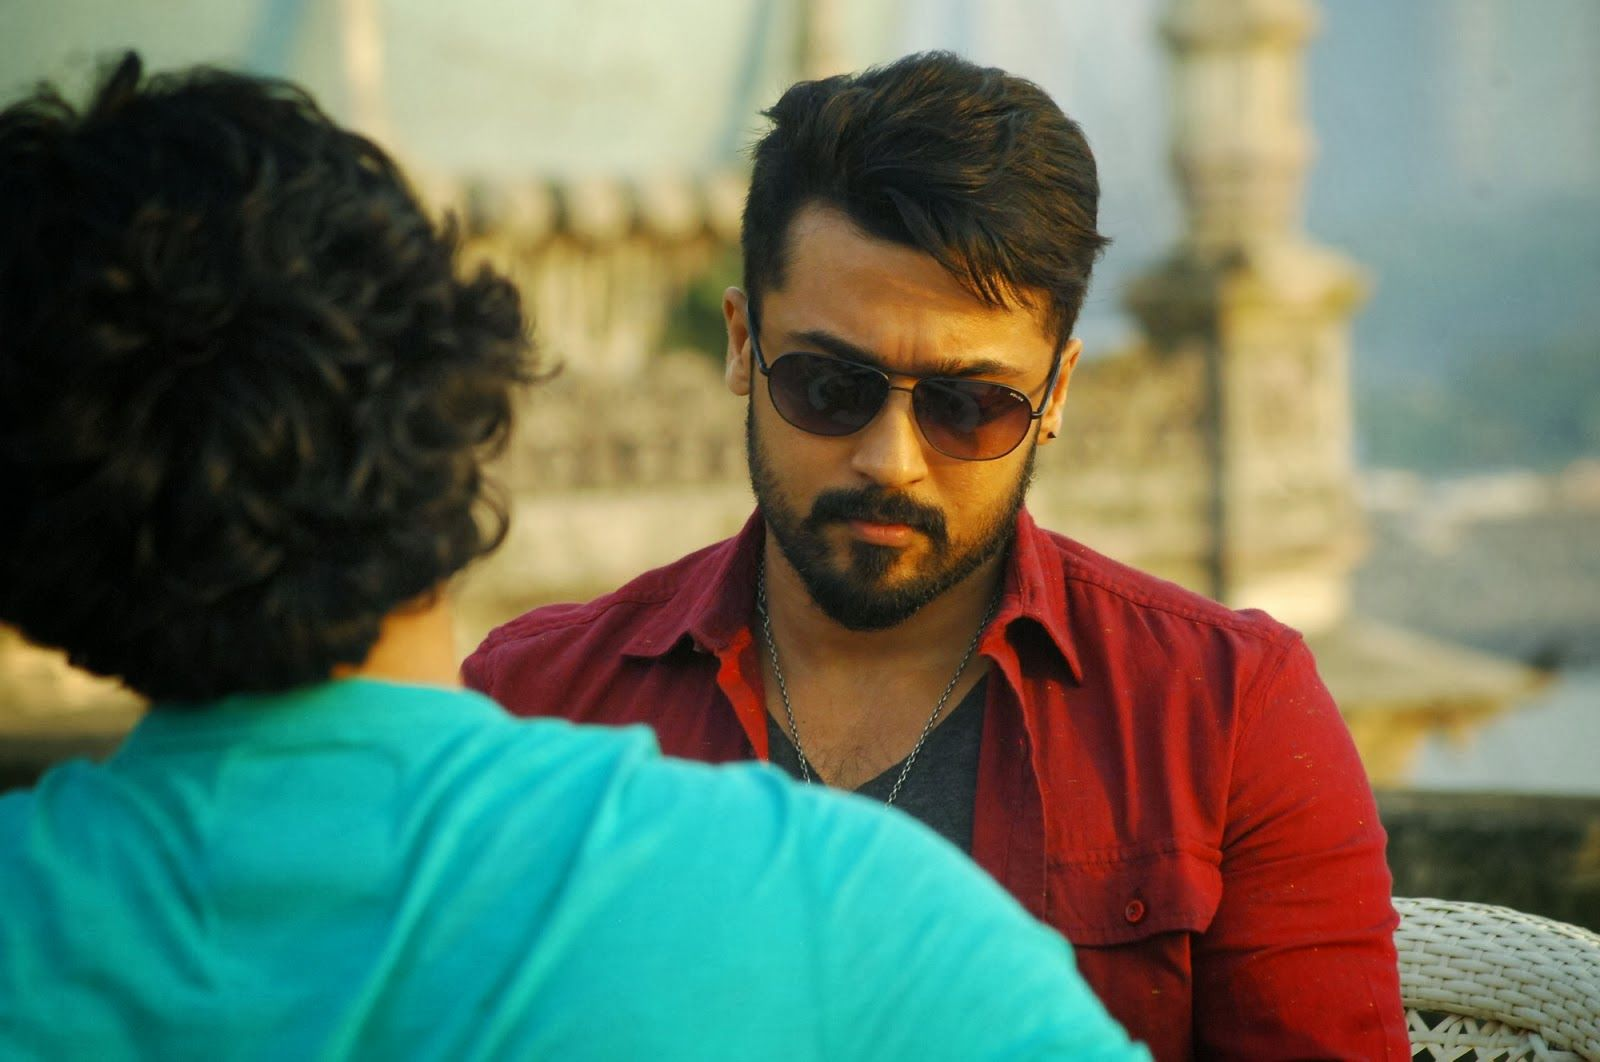 Anjaan shoot completed suriya has completed the shoot of anjaan anjaan shoot completed suriya has completed the shoot of anjaan directed by n lingusamy produced by utv motion picture in association with thiruppatthy altavistaventures Image collections